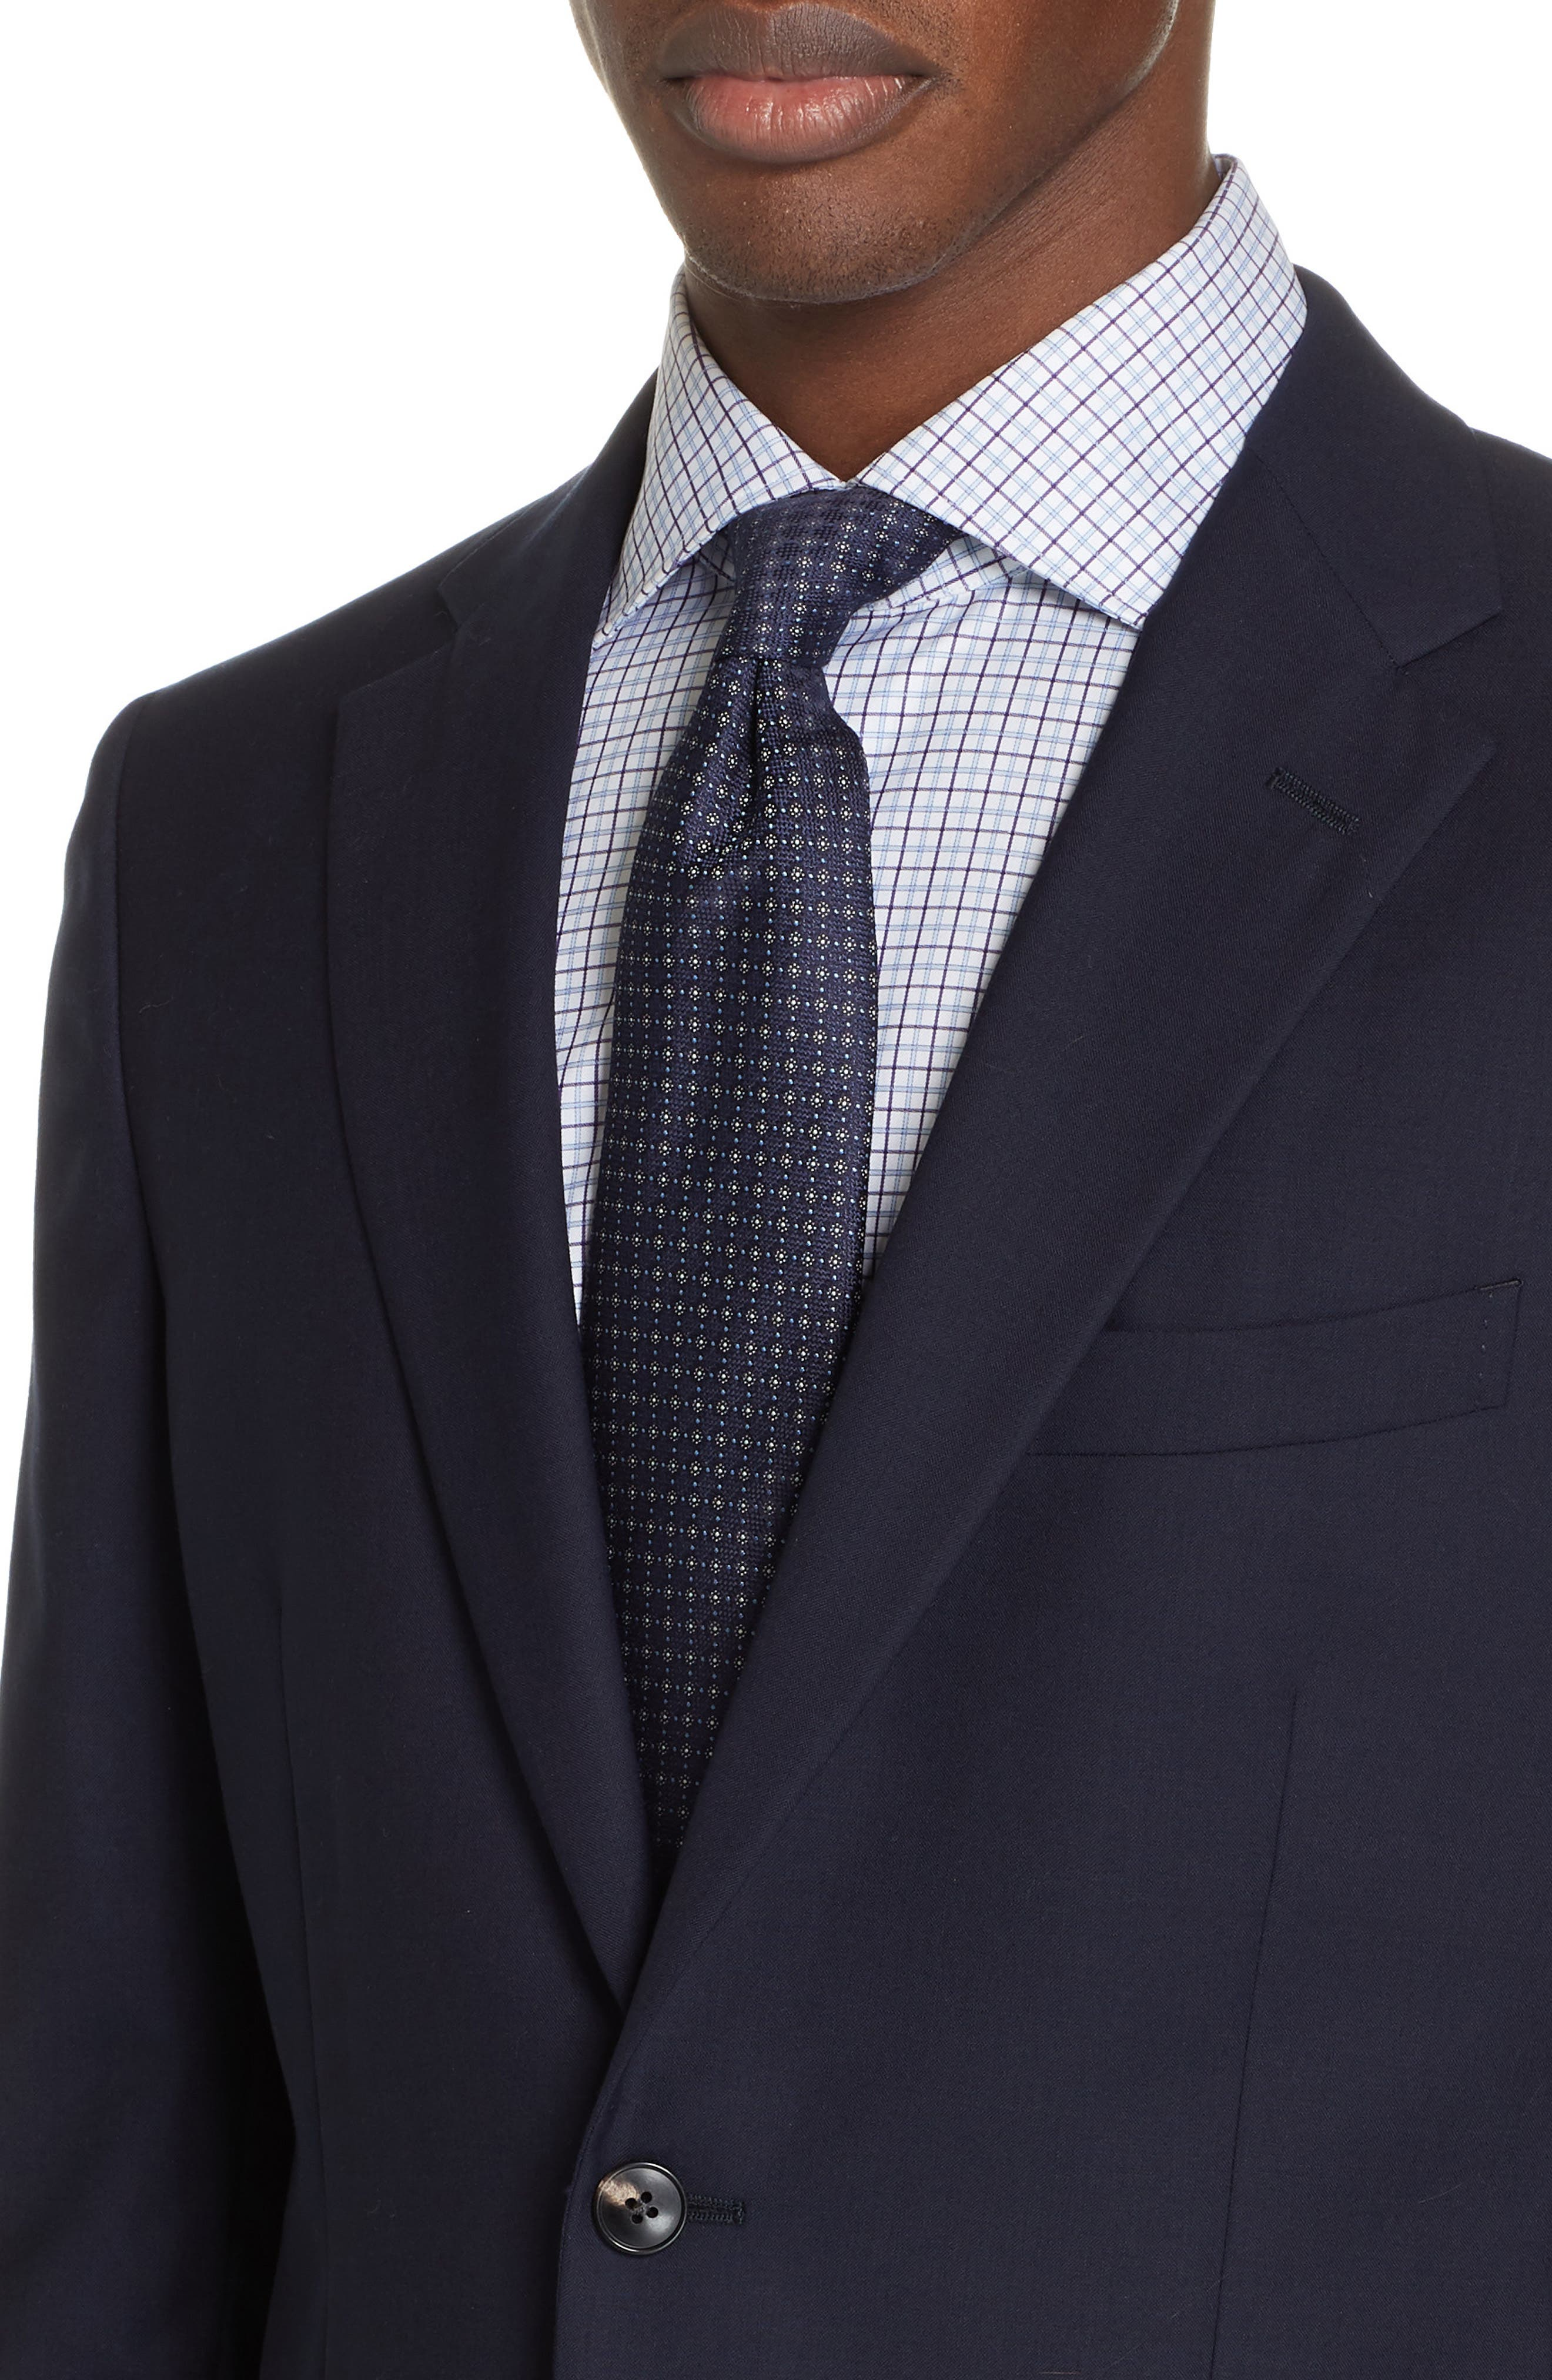 Milano Trim Fit Solid Wool Suit,                             Alternate thumbnail 4, color,                             NAVY